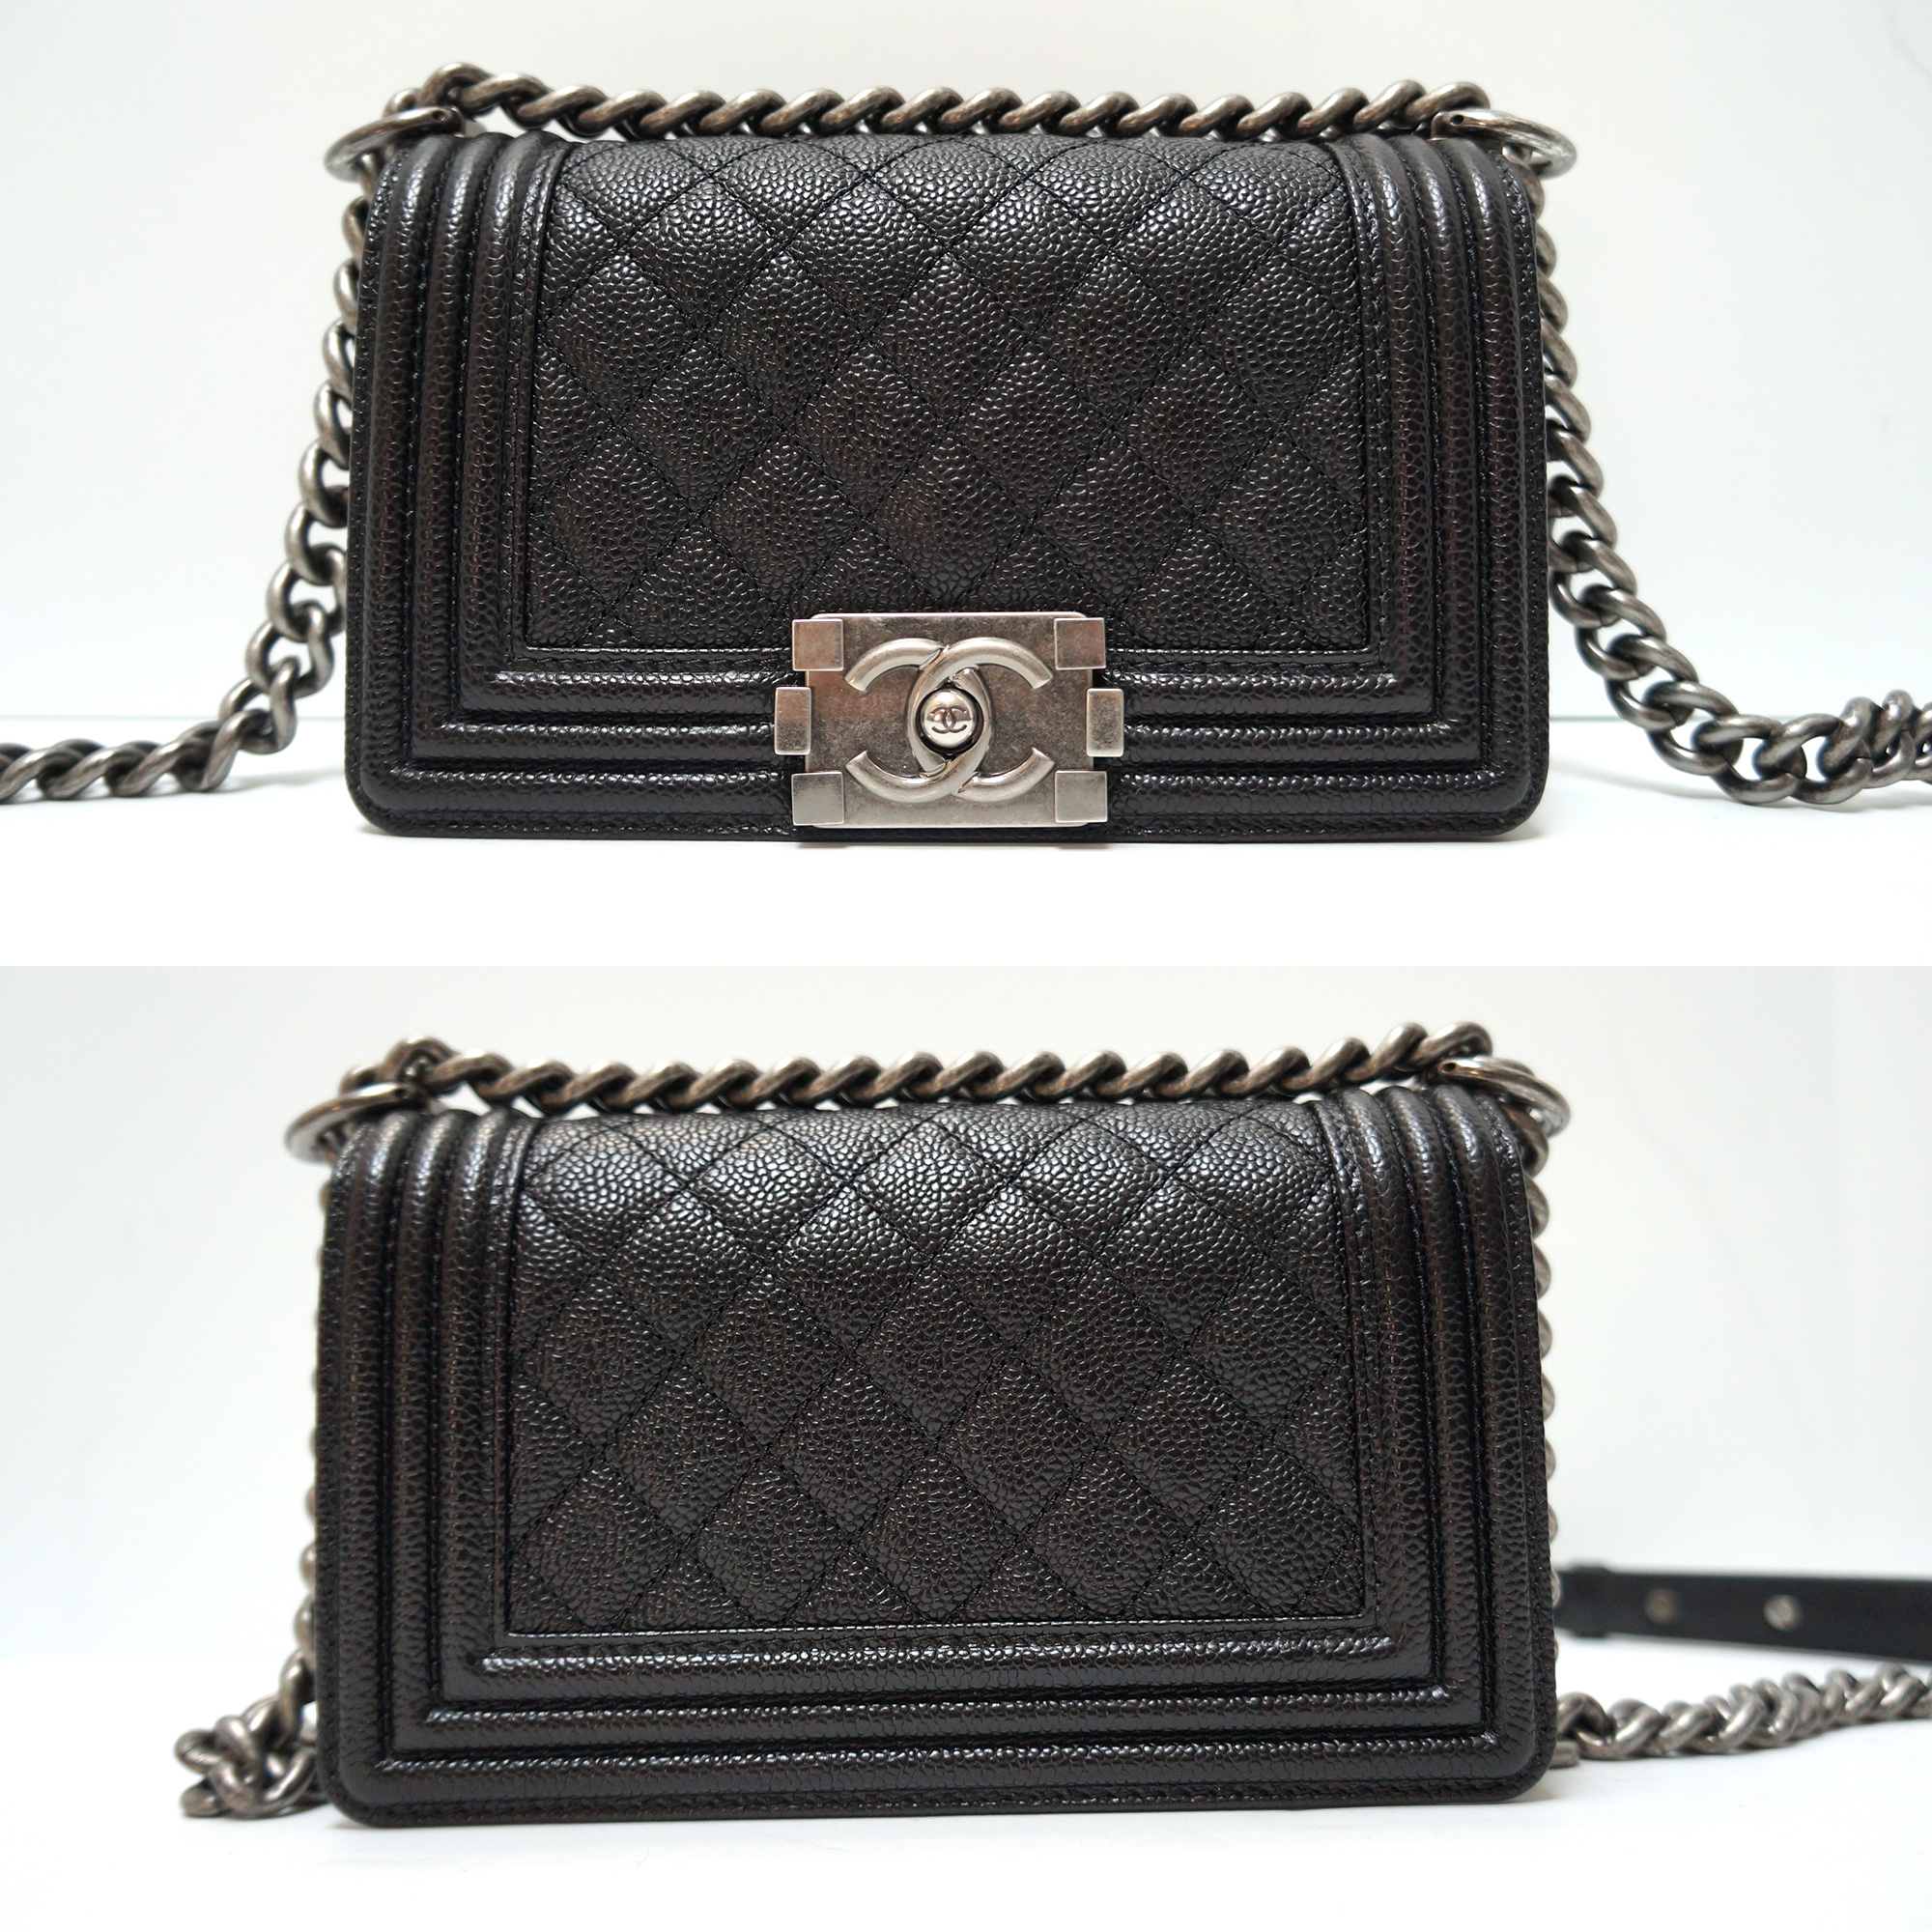 6e83b09a53345f Chanel Small Flap Bag Caviar Leather | Stanford Center for ...